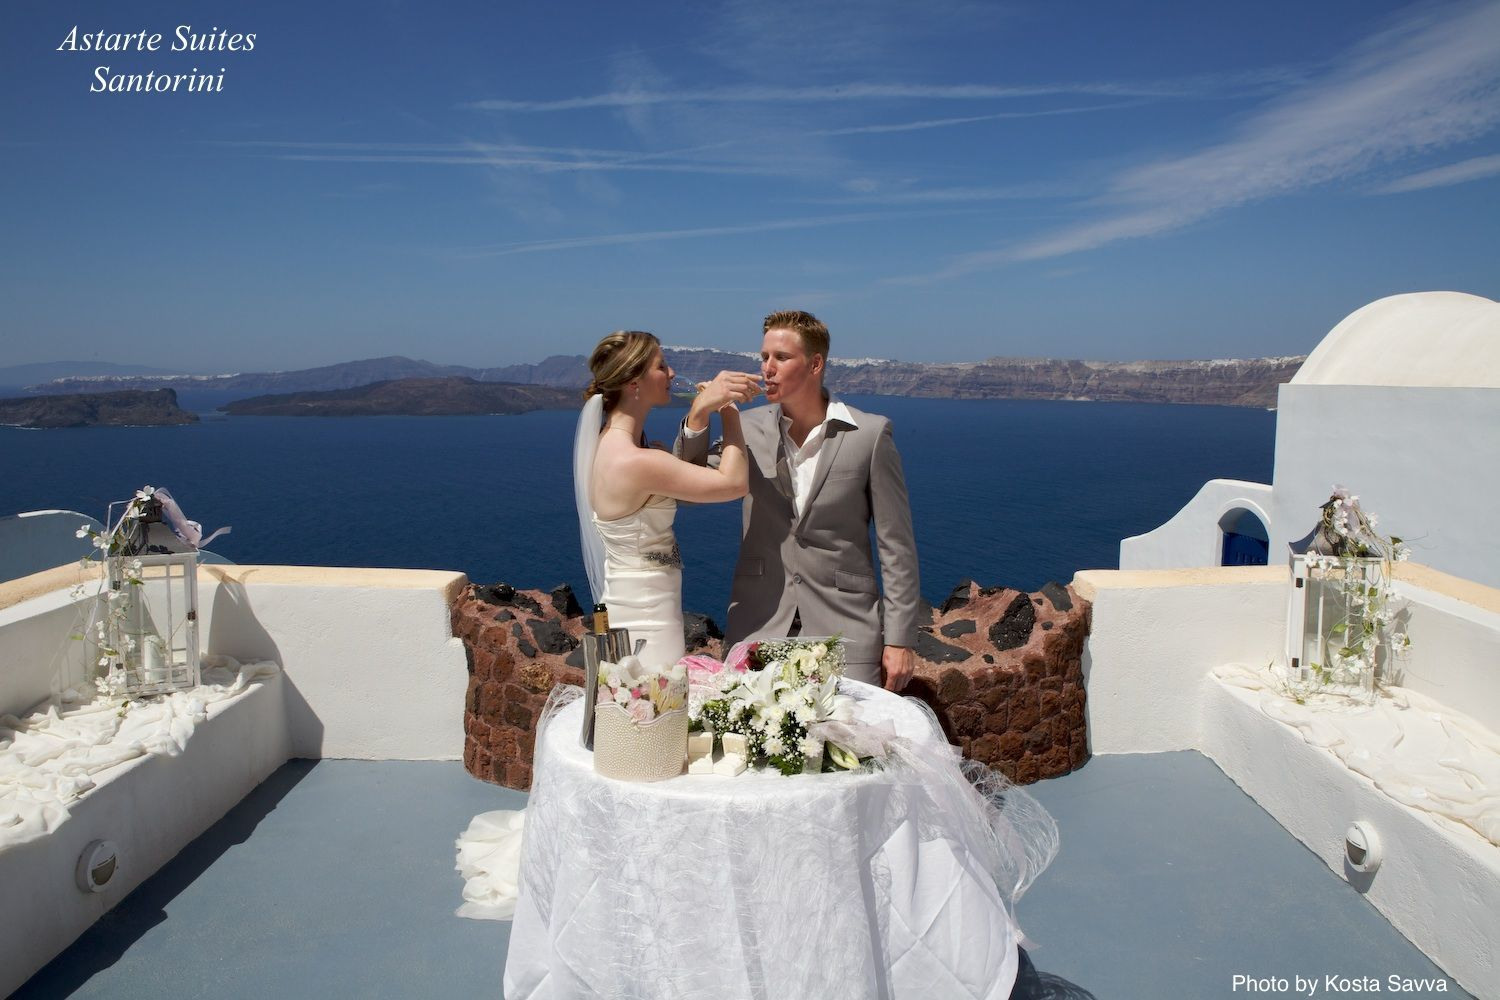 Astarte_Suites_in_Santorini_Weddings_2_2